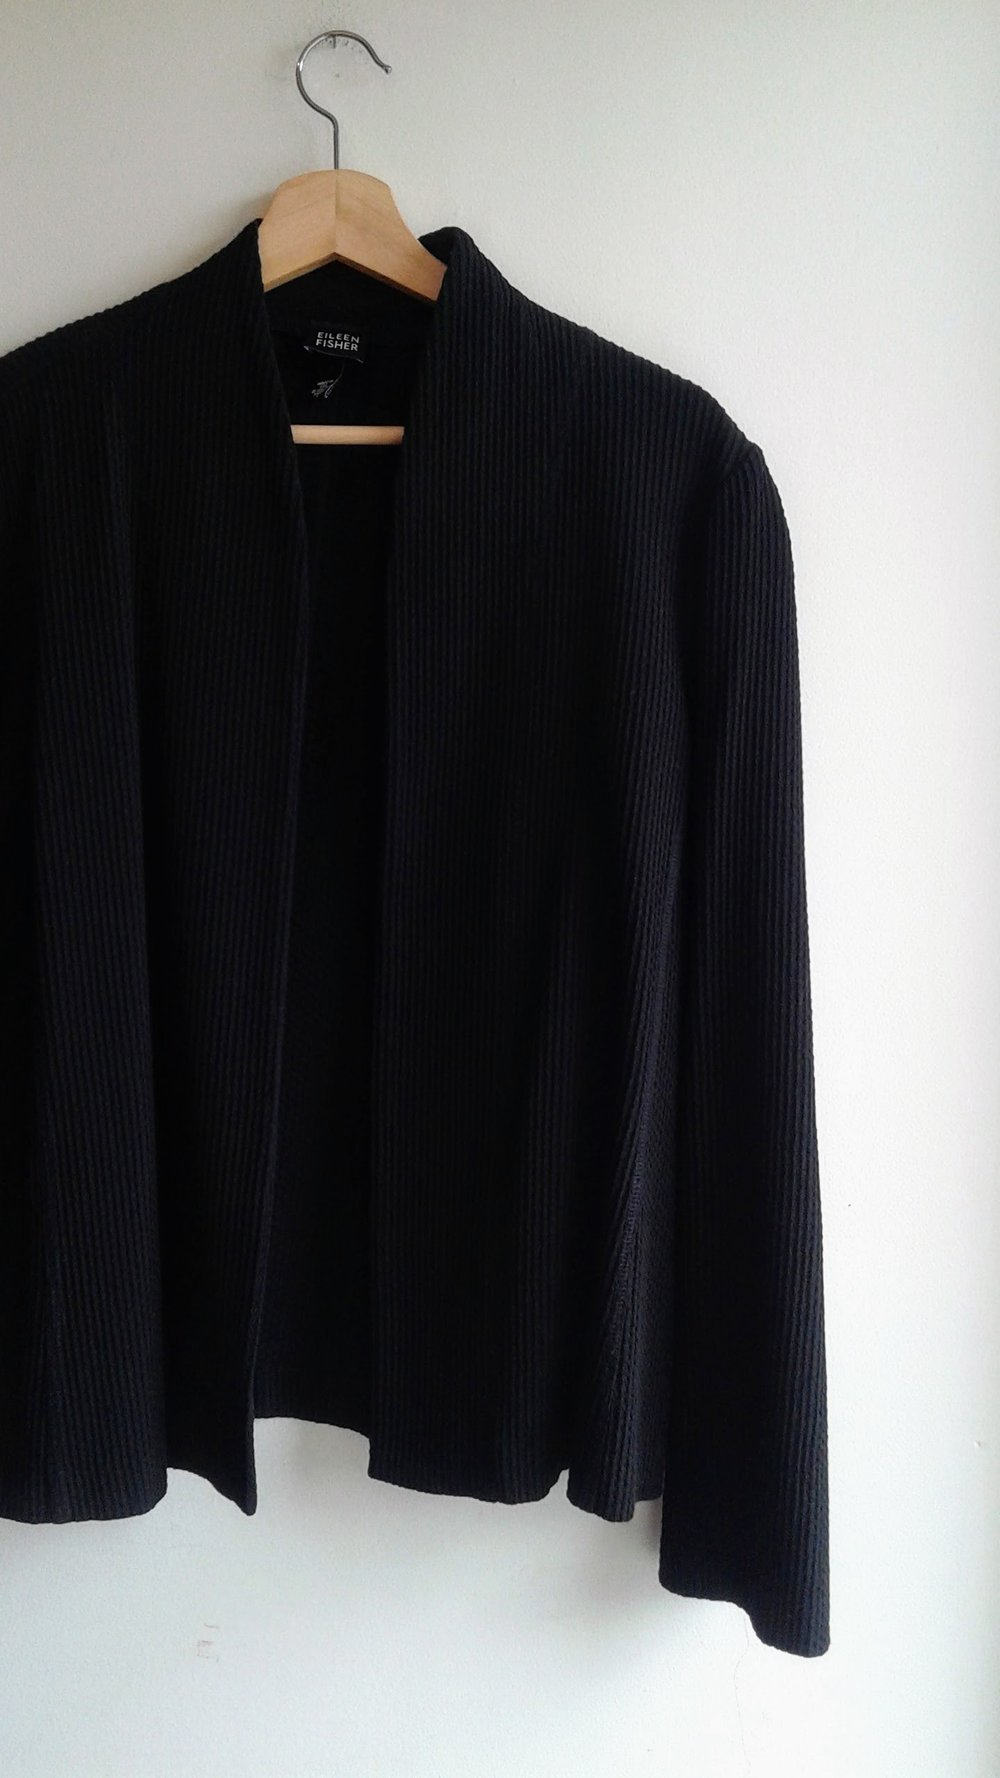 Eileen Fisher sweater; Size L, $42